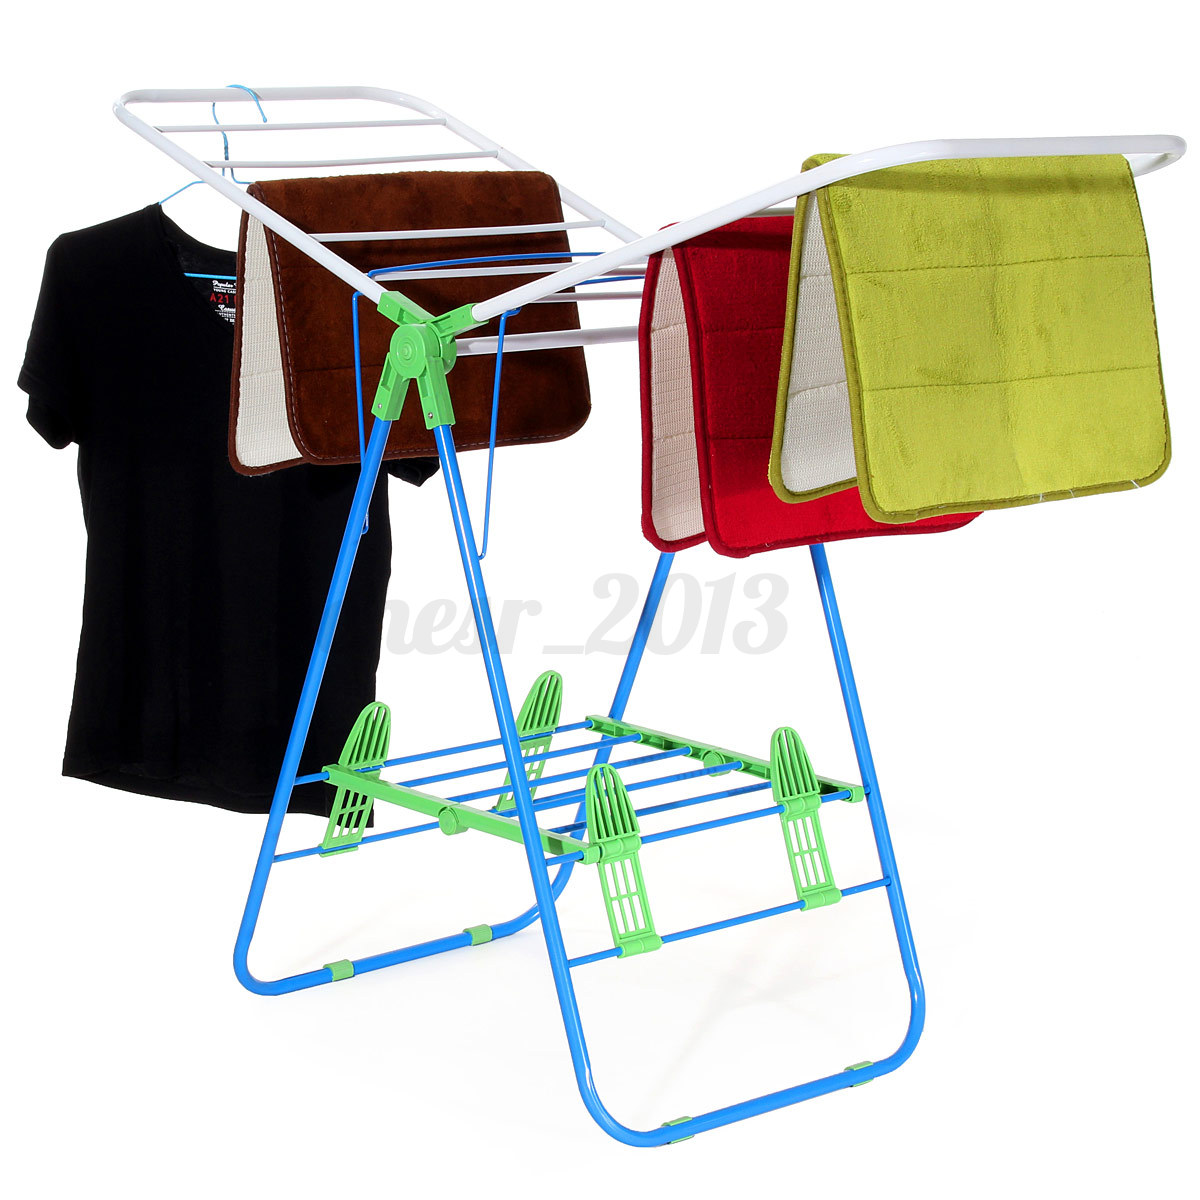 clothes drying y airer dry rack indoor folding garment. Black Bedroom Furniture Sets. Home Design Ideas